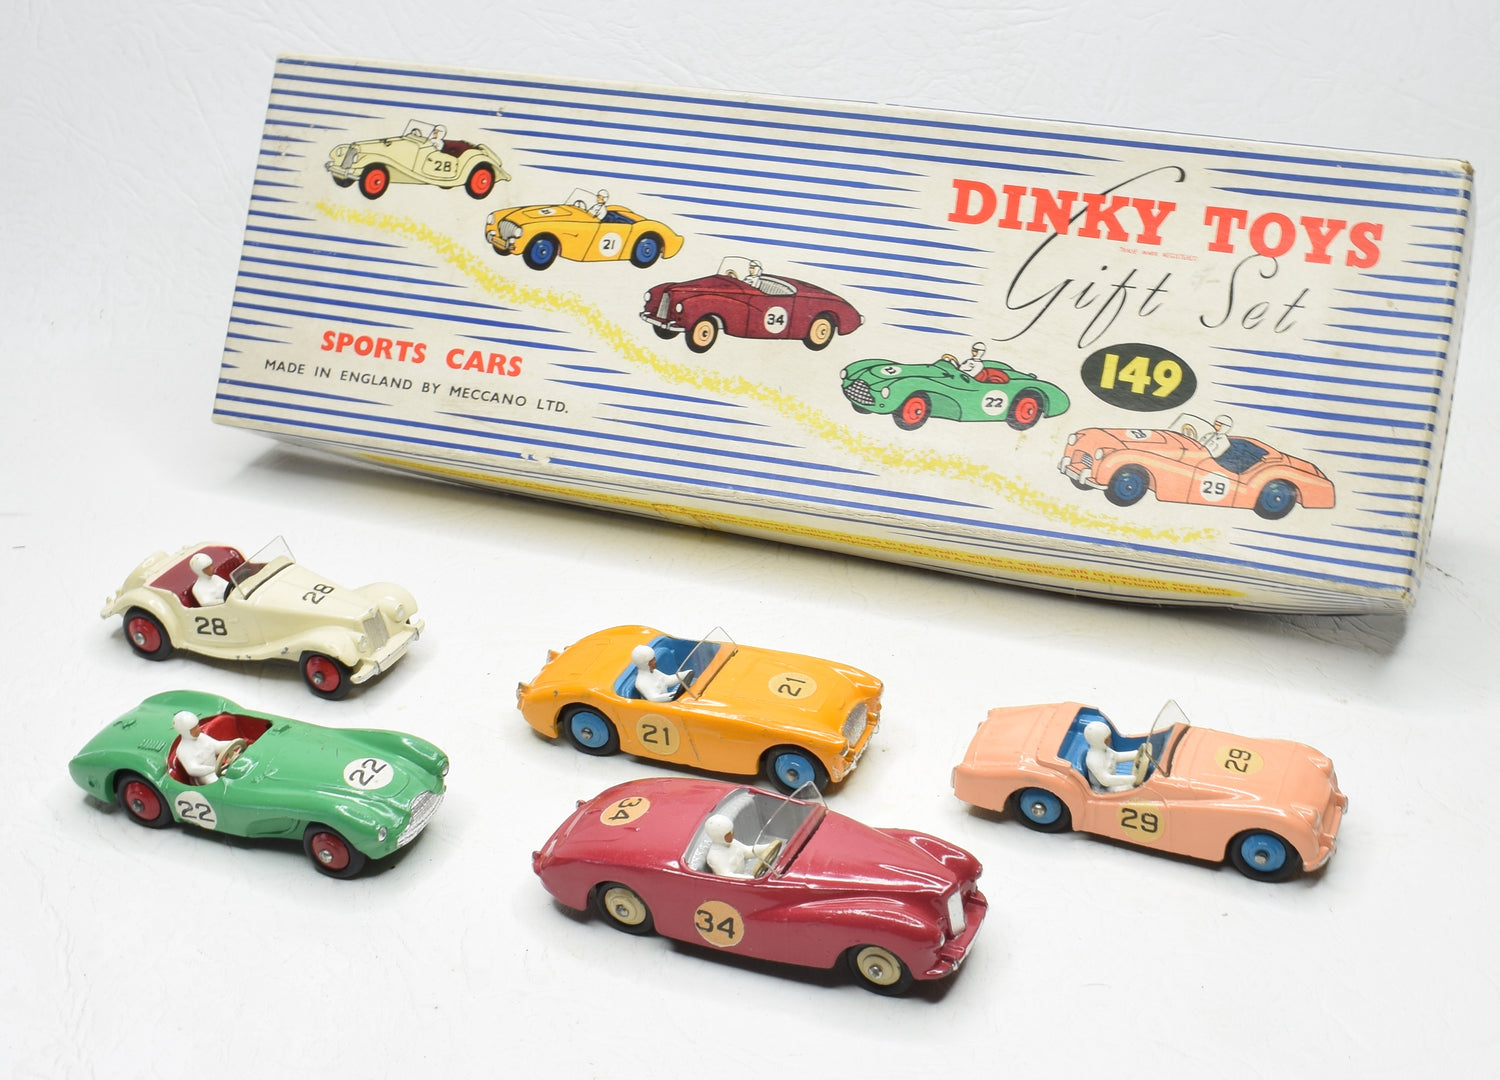 Dinky toys 149 Sports Car Gift set Very Near Mint/Boxed 'Brecon' Collection